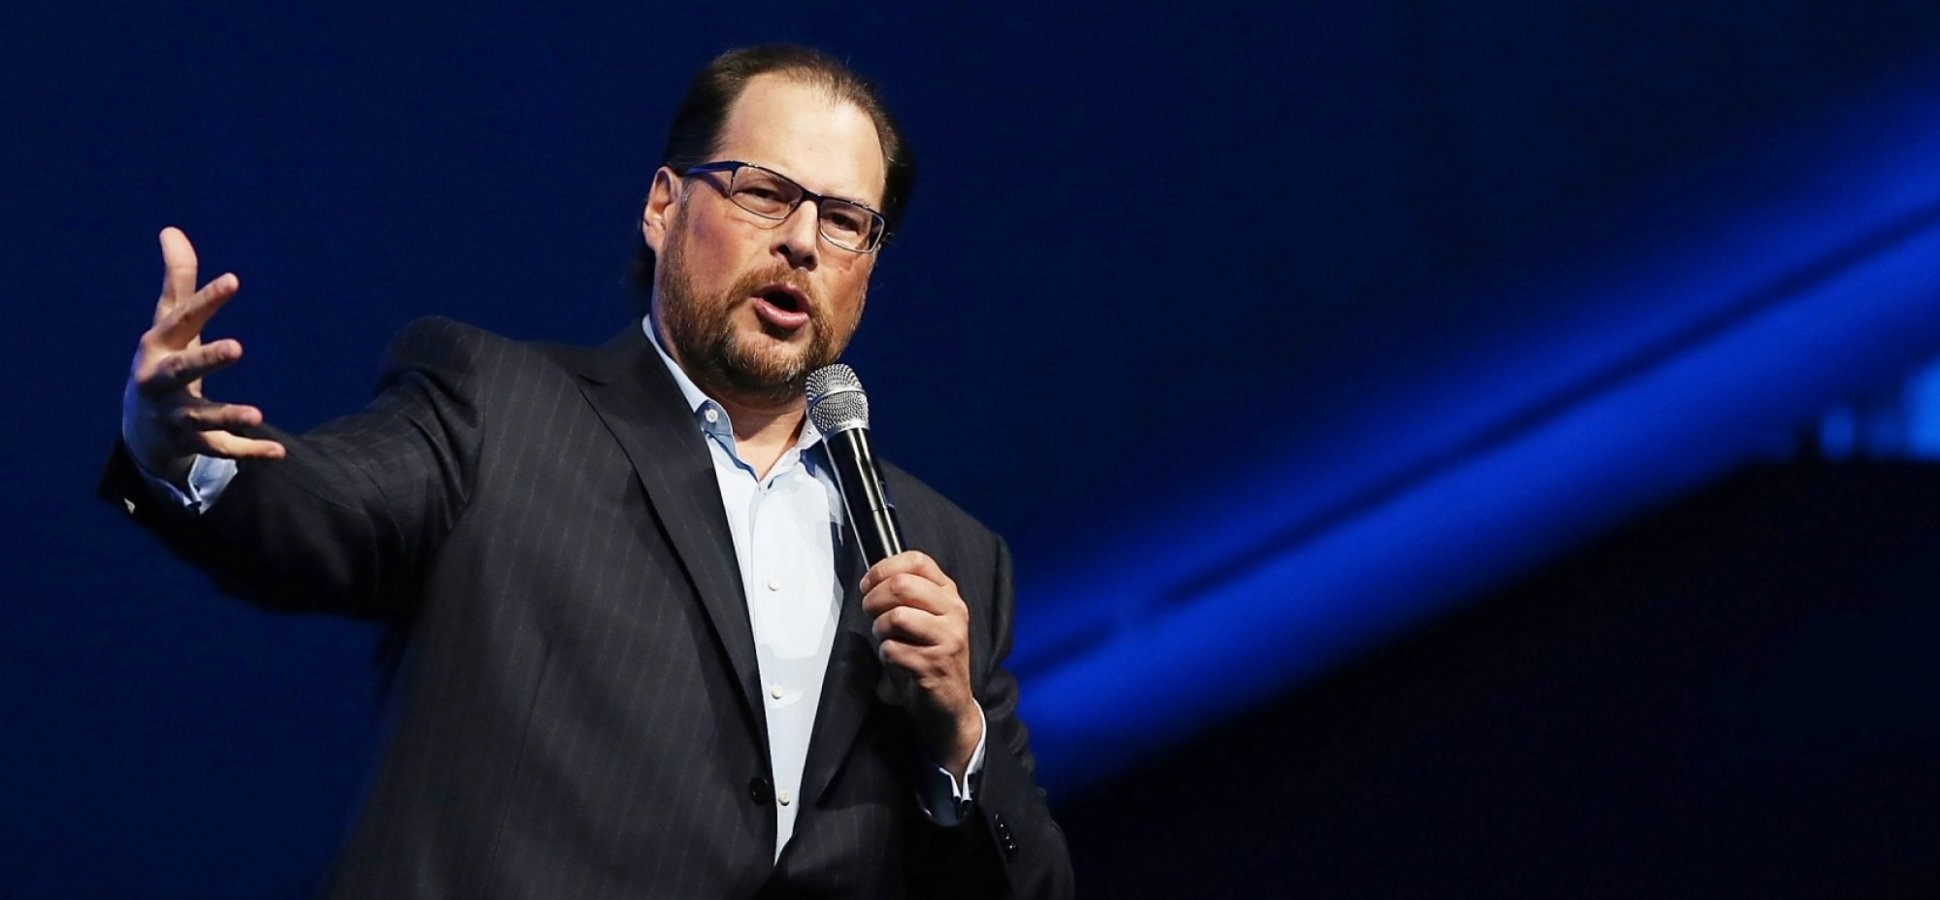 My run-in with Marc Benioff, and tips to be a star performer